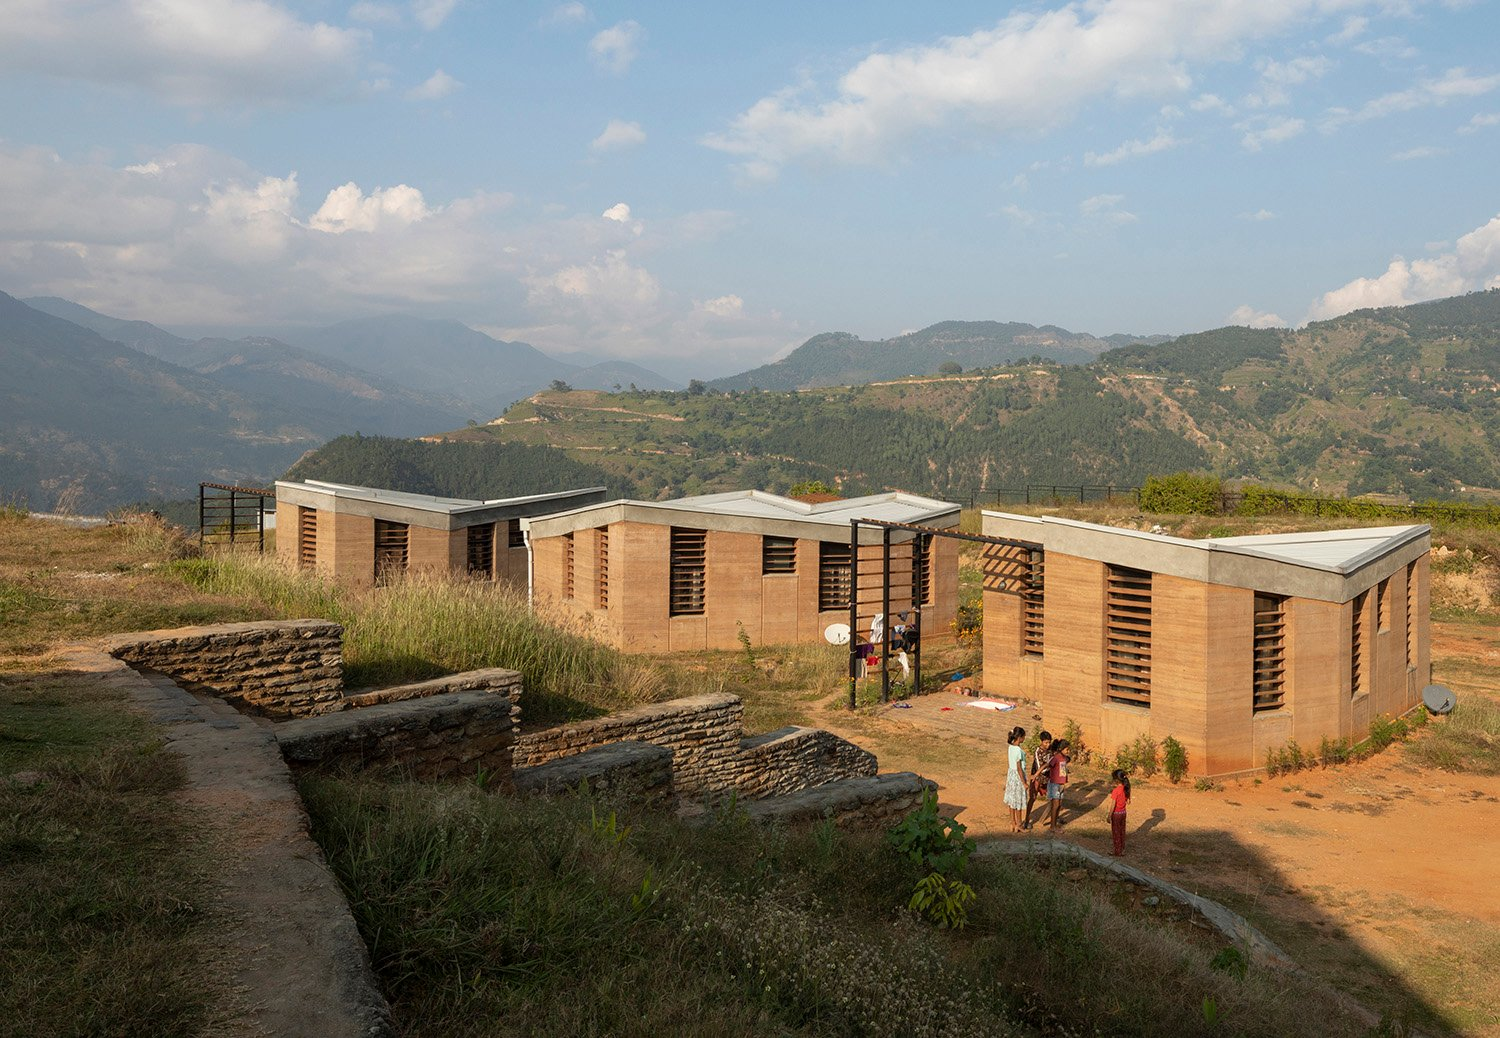 Ten staff houses provide accommodations for medical staff and their families. Elizabeth Felicella